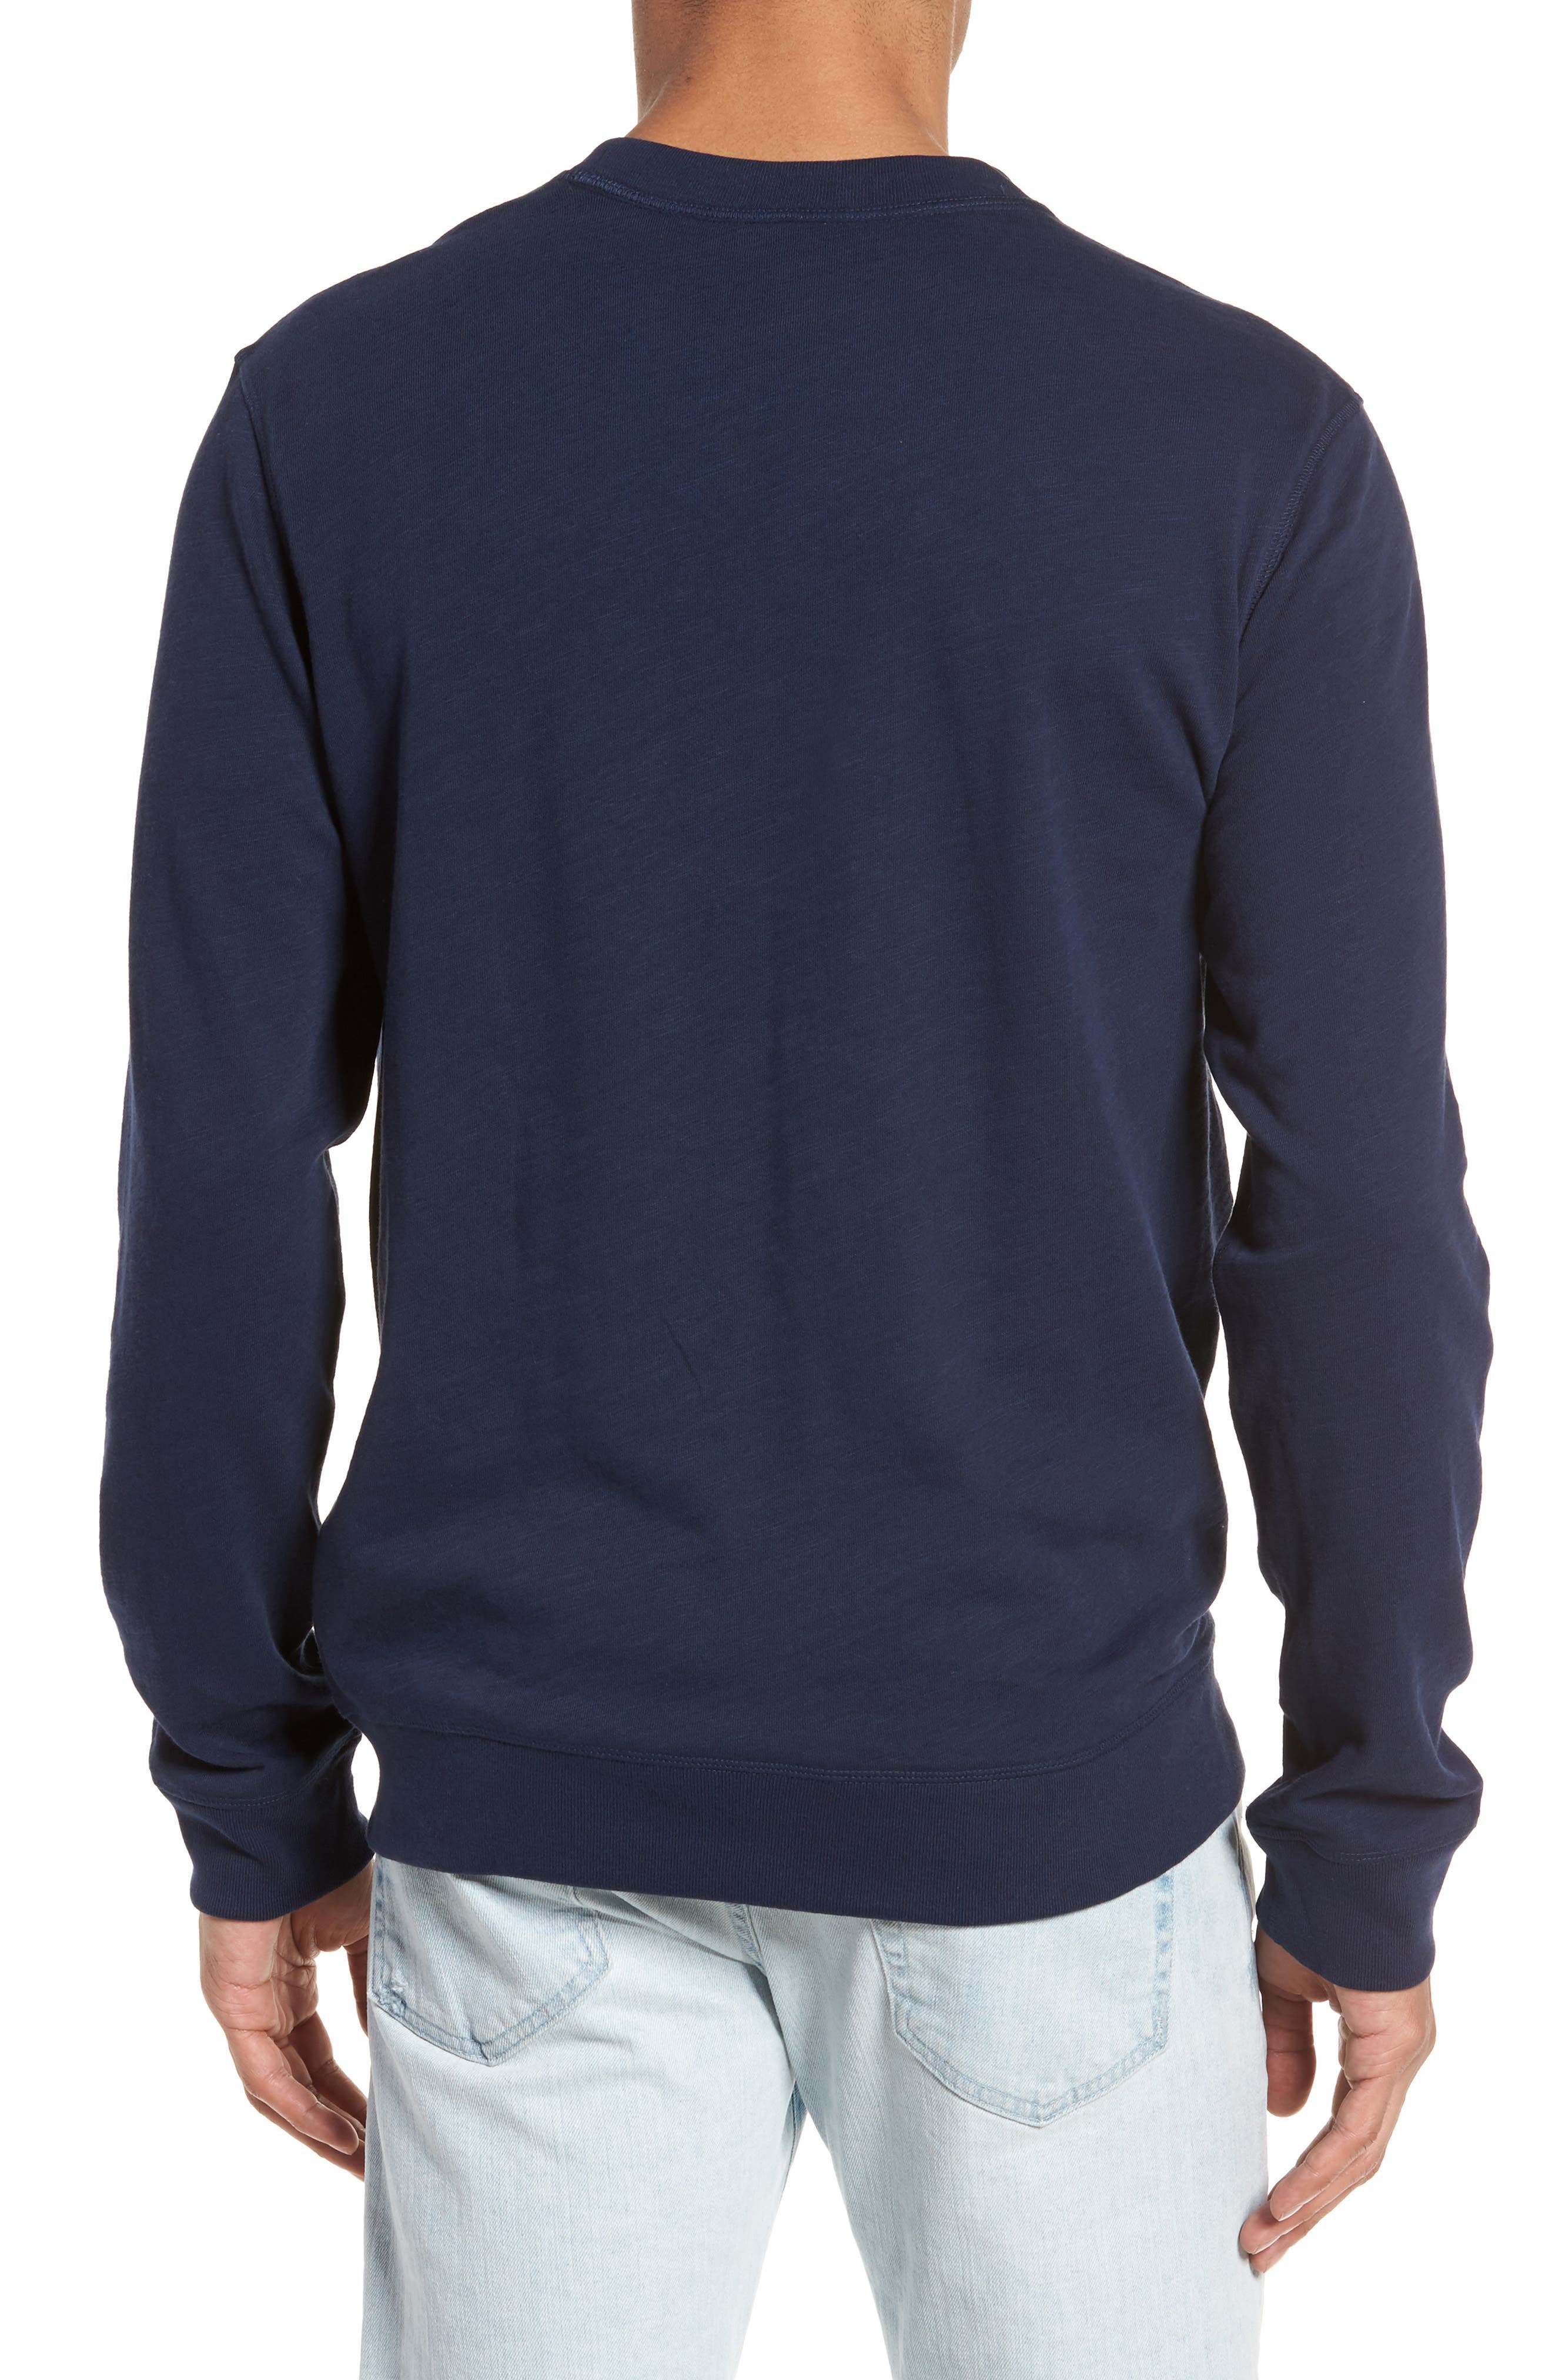 Slim Fit French Terry Sweatshirt,                             Alternate thumbnail 2, color,                             Navy Blue